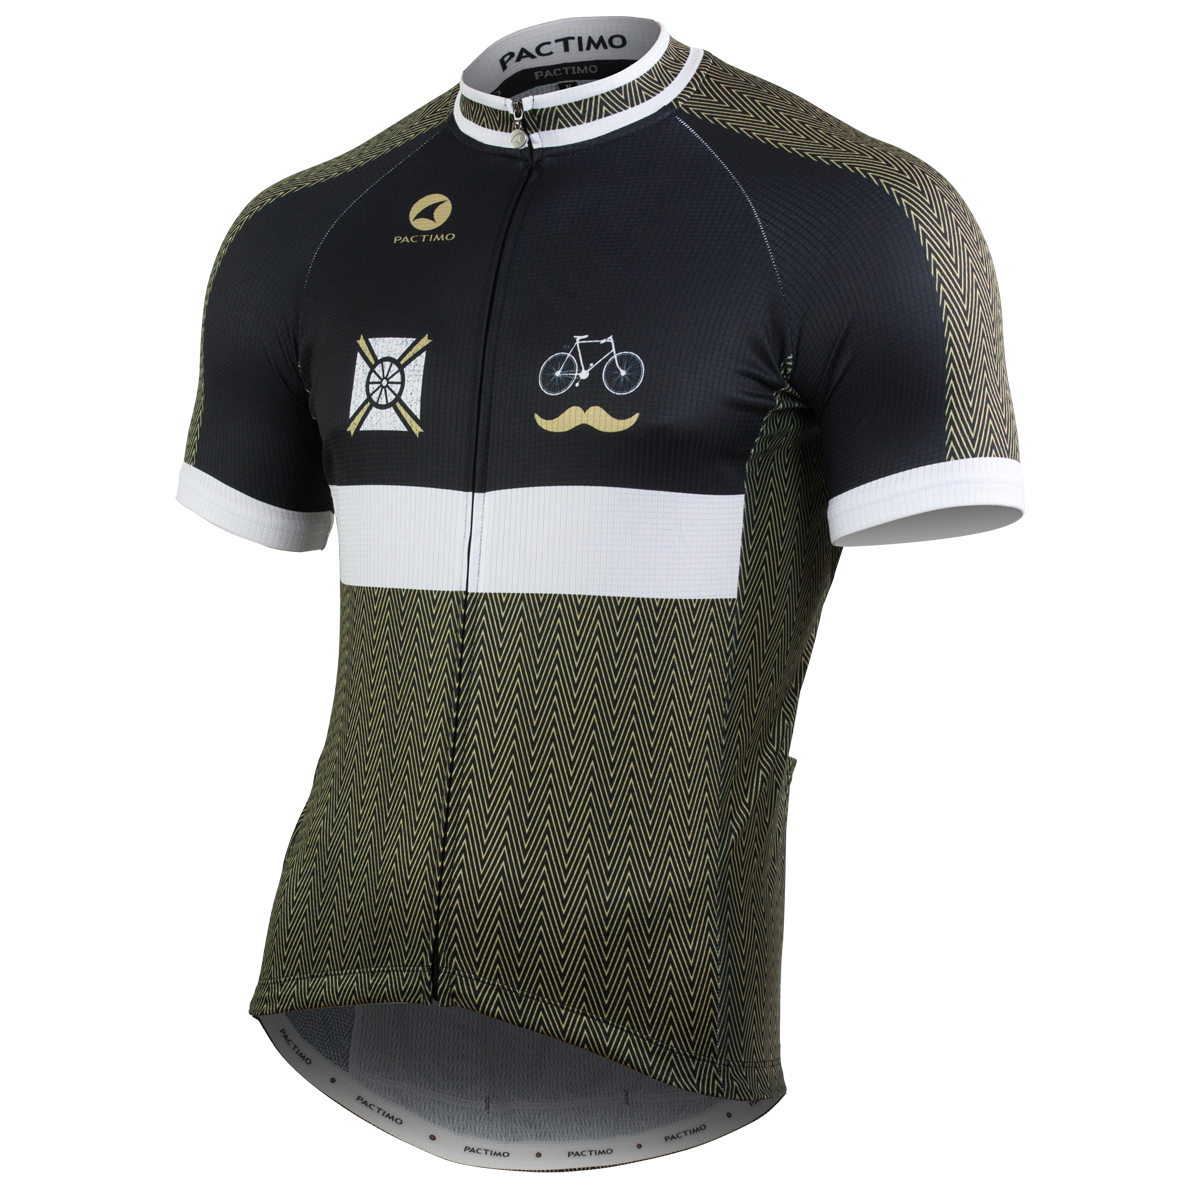 Klein Goldman Tweed Cycling Jersey and Shorts | Unique Bike Gear Designs |  Pactimo. Maillot CiclistaCiclismo ...